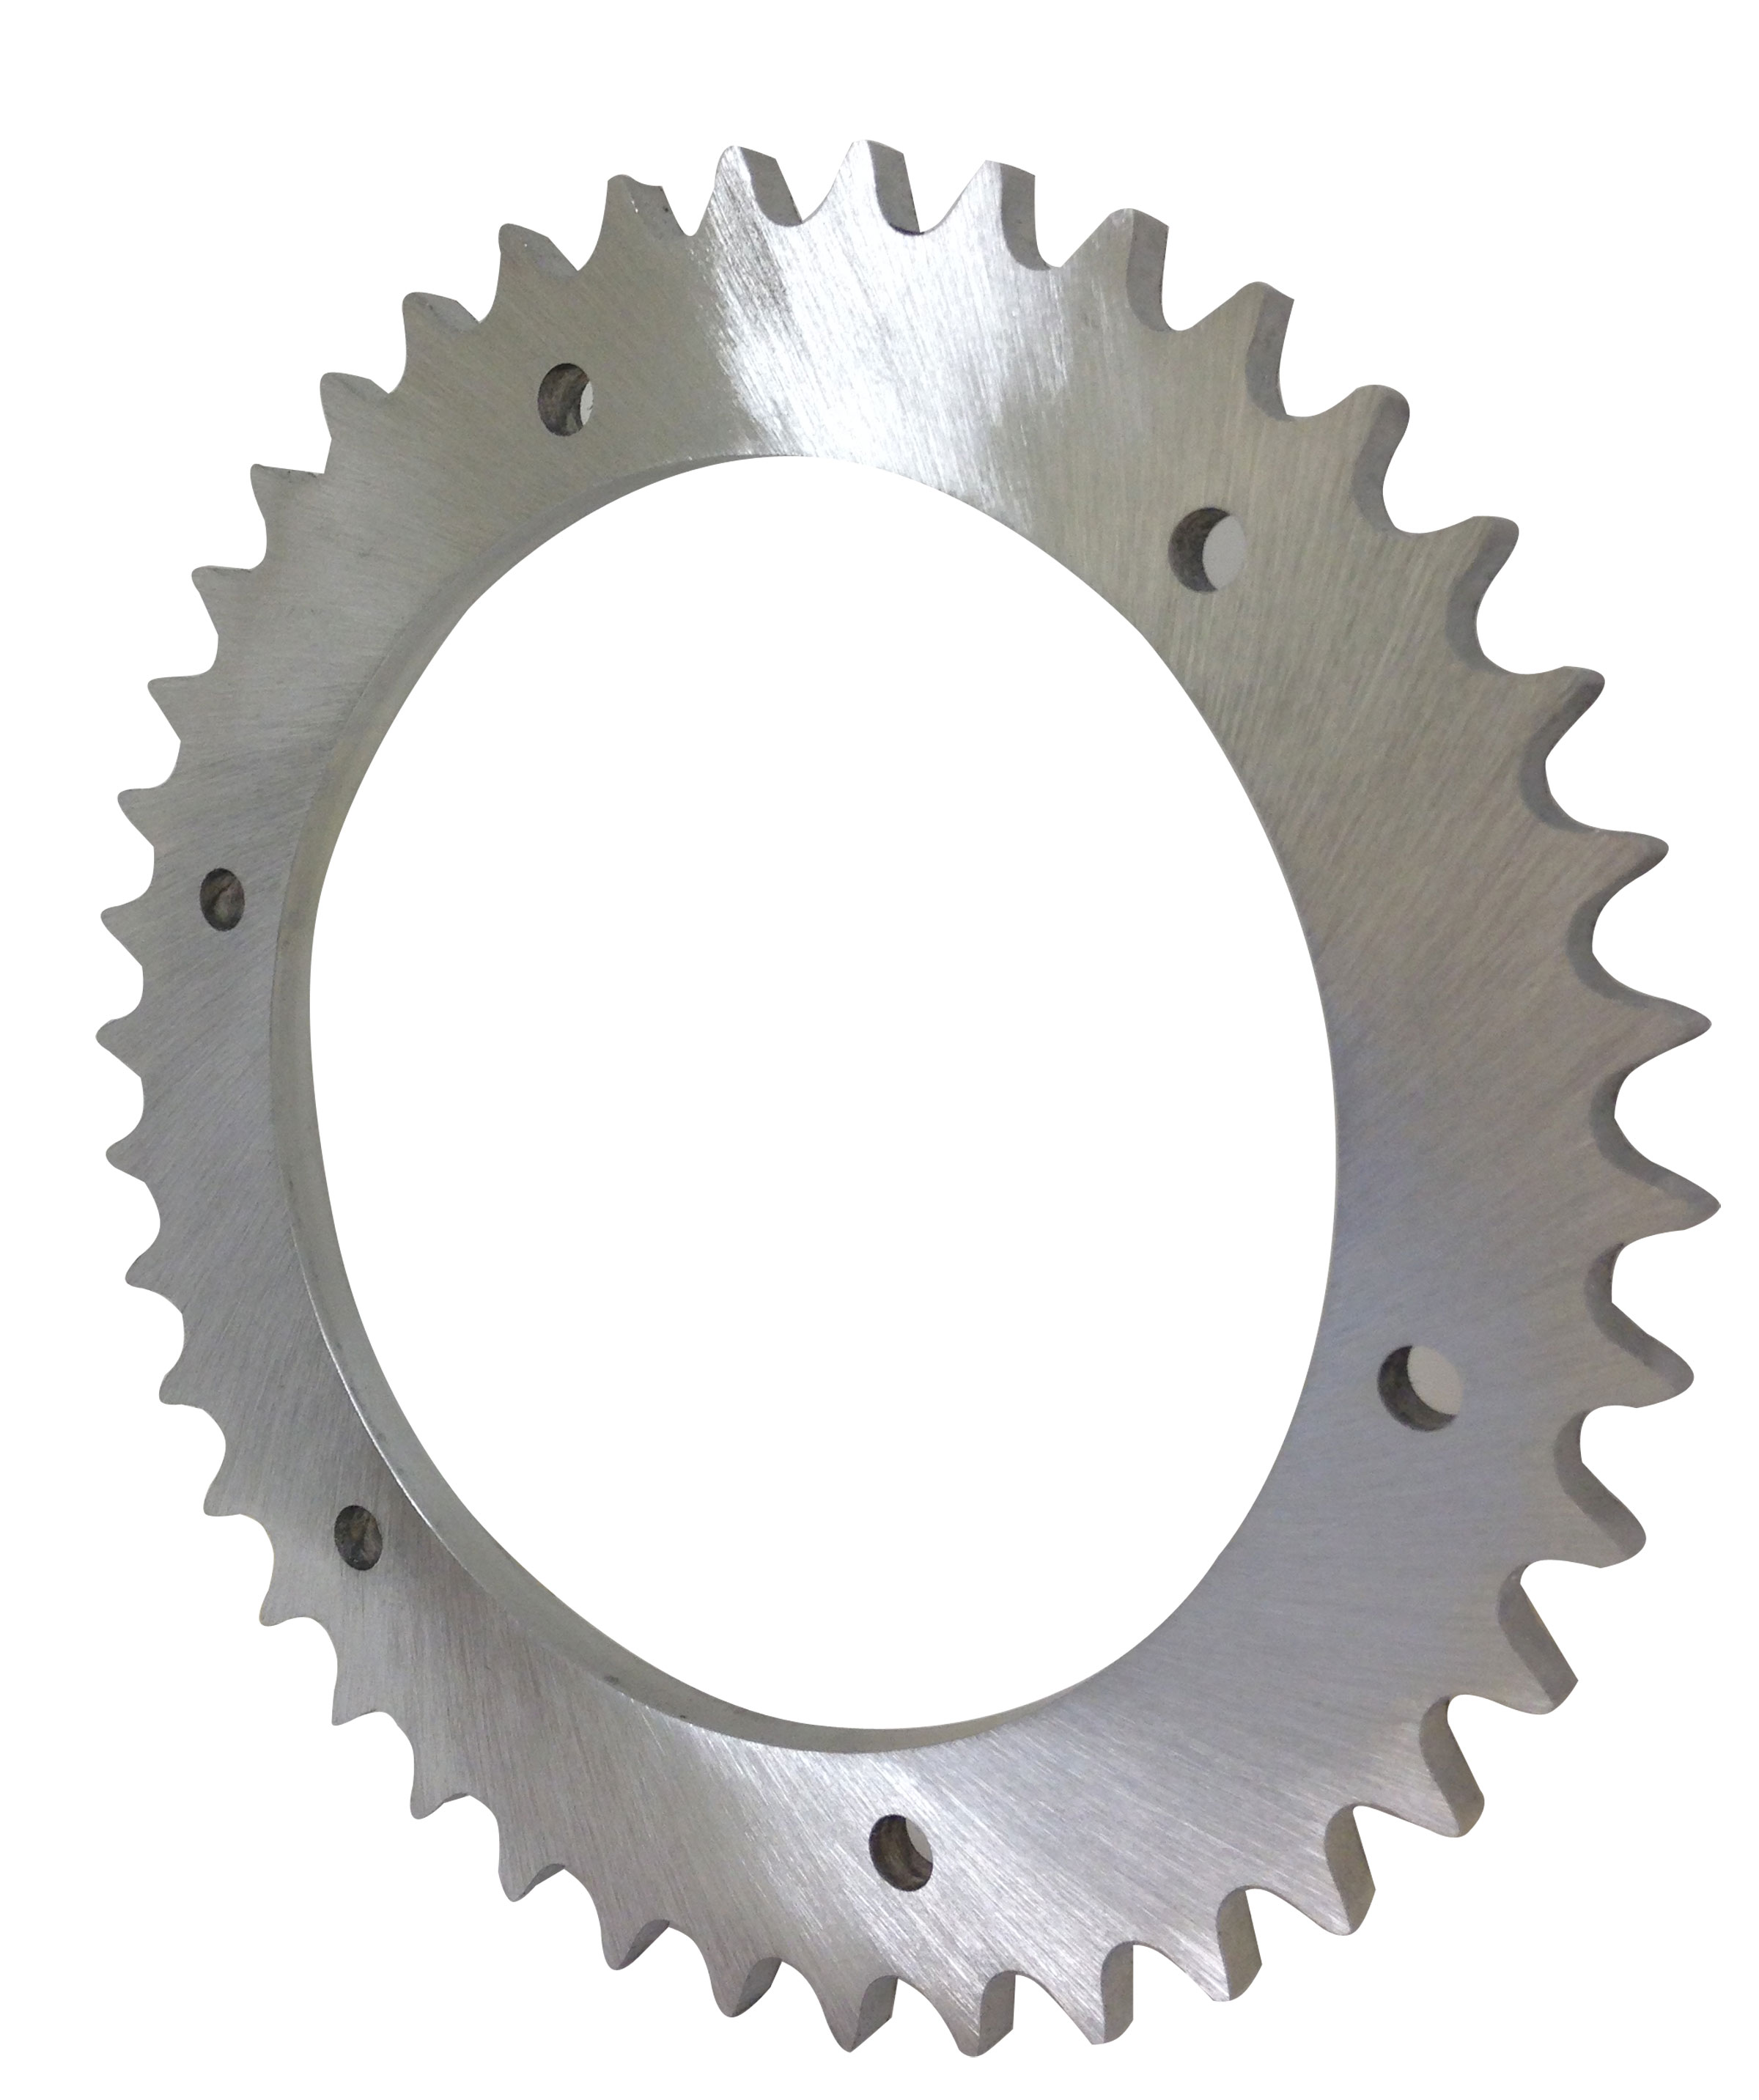 Go Kart Sprockets And Chains : Azusa chain sprocket split azt s bmi